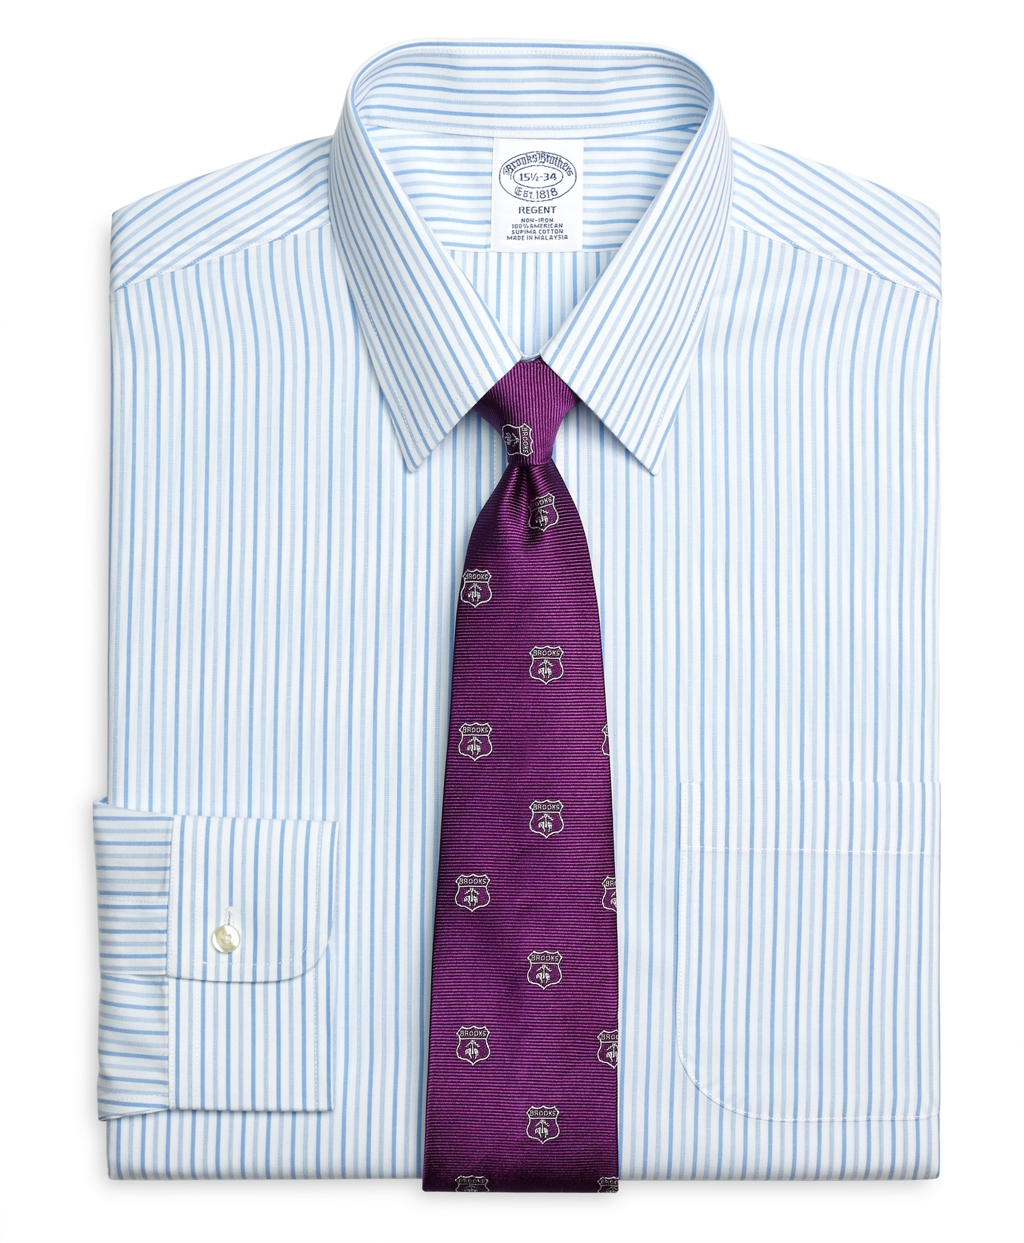 Brooks brothers non iron regent fit bold stripe dress for Brooks brothers non iron shirts review